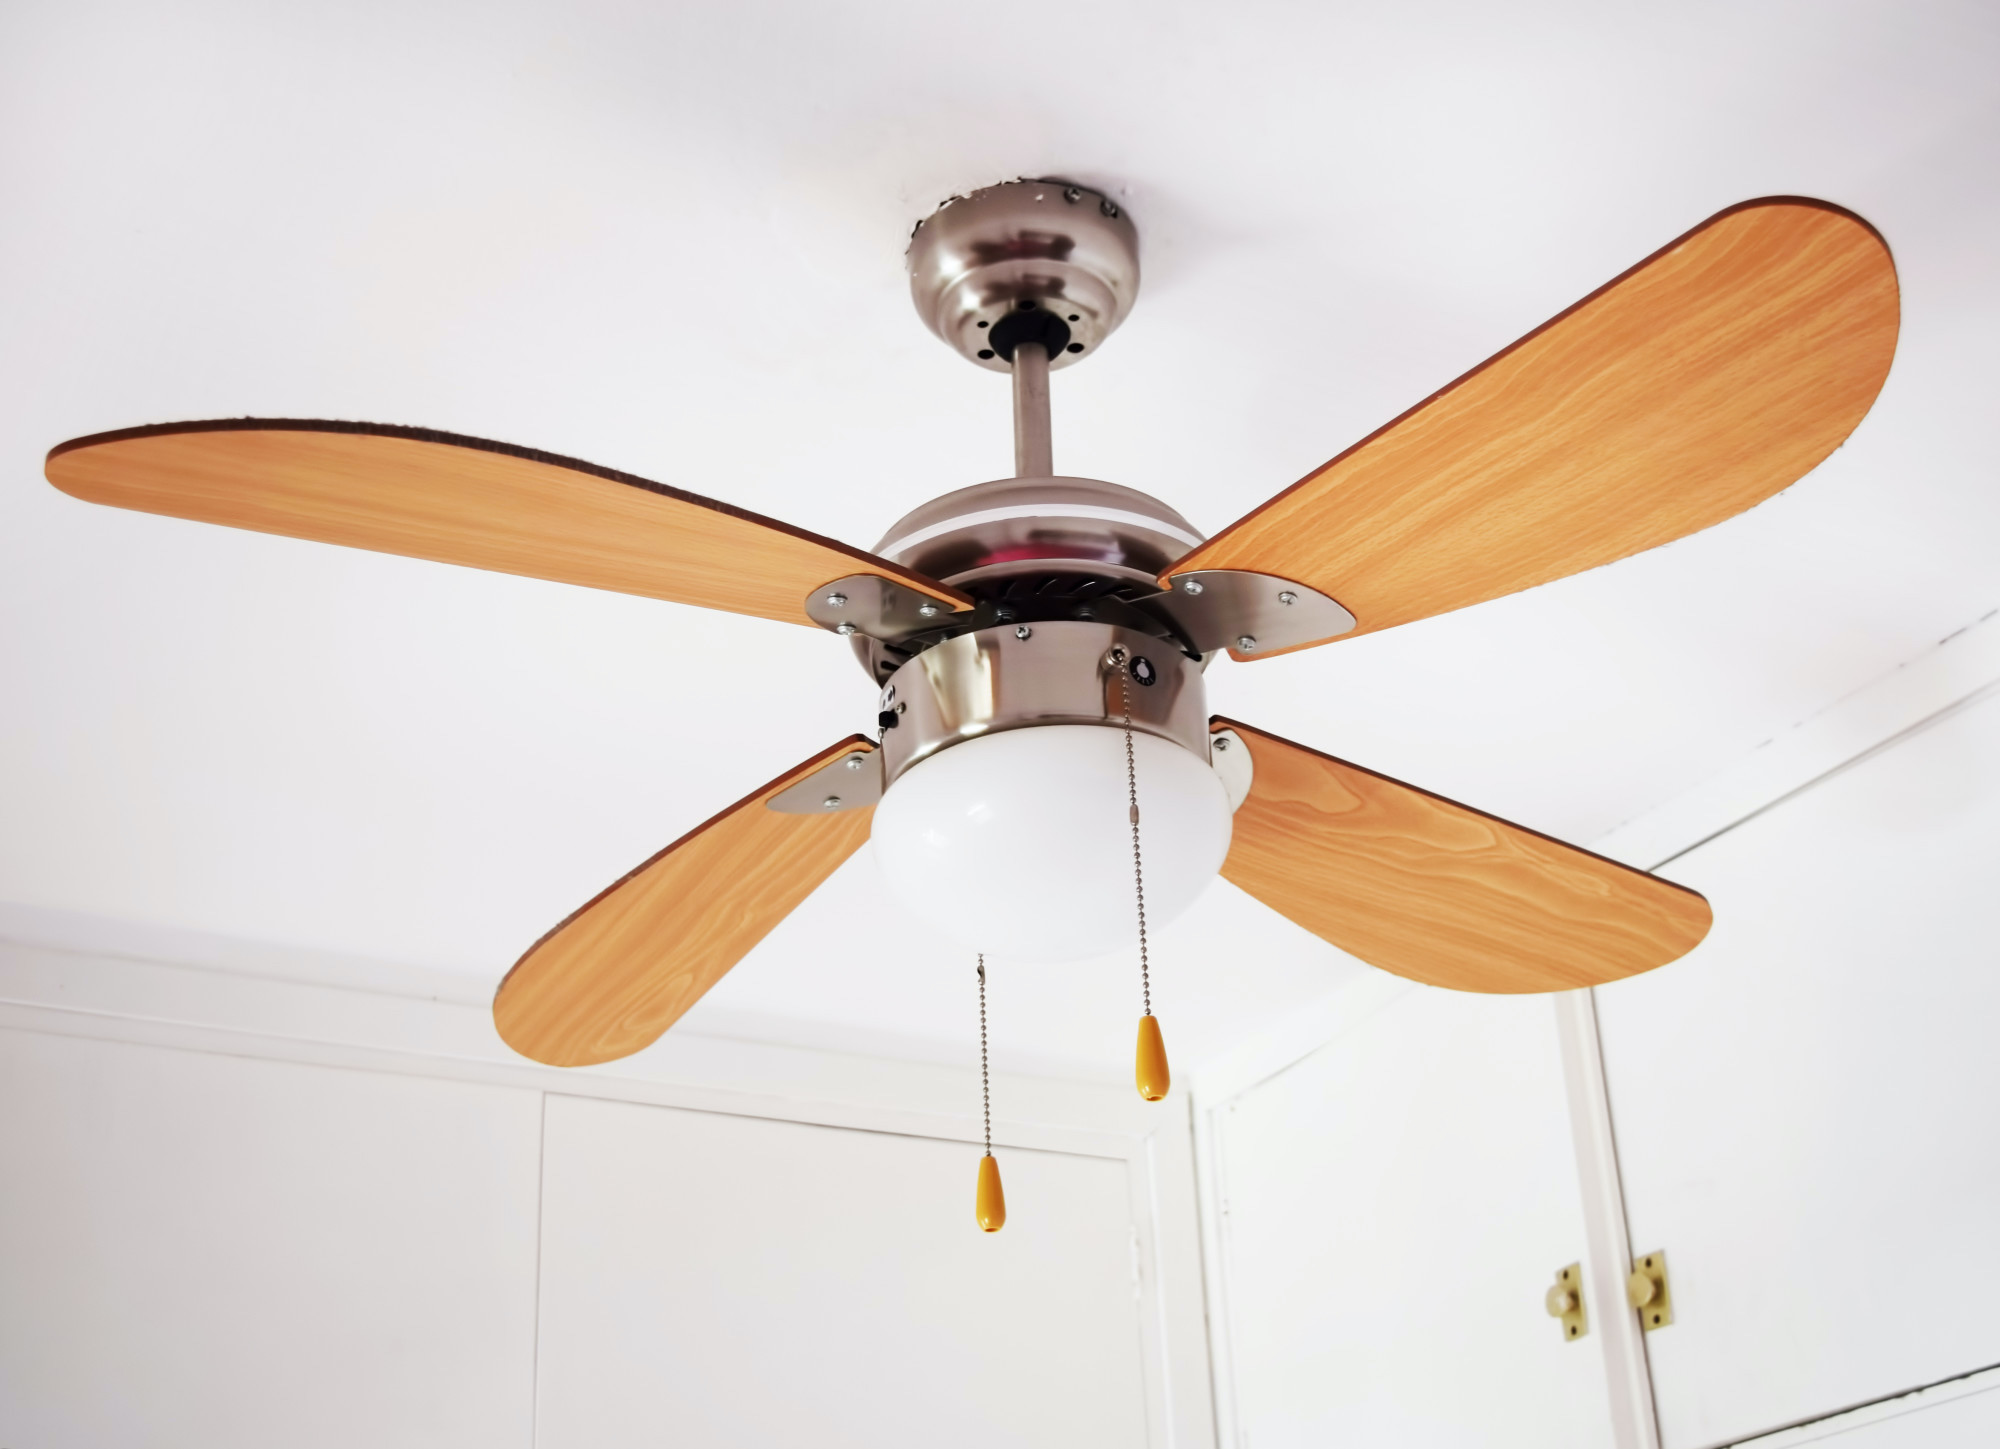 Ceiling Fans for Your Home